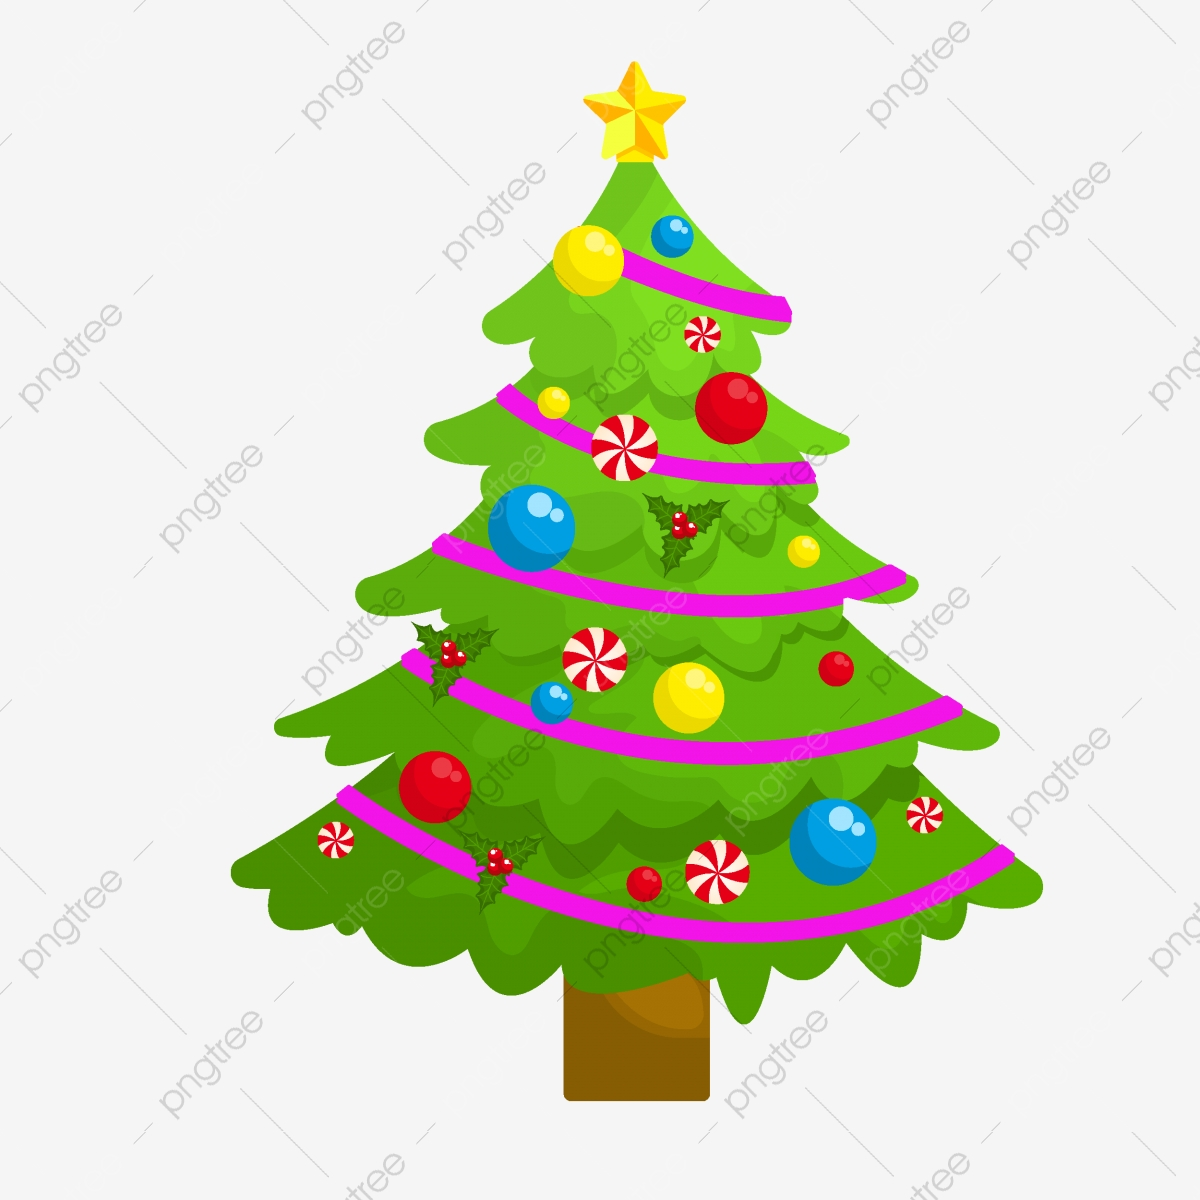 Cartoon Cute Christmas Tree Element For Commercial Use Simple Pretty Lovely Png And Vector With Transparent Background For Free Download This is a set of detailed vector christmas tree illustrations: https pngtree com freepng cartoon cute christmas tree element for commercial use 4030113 html